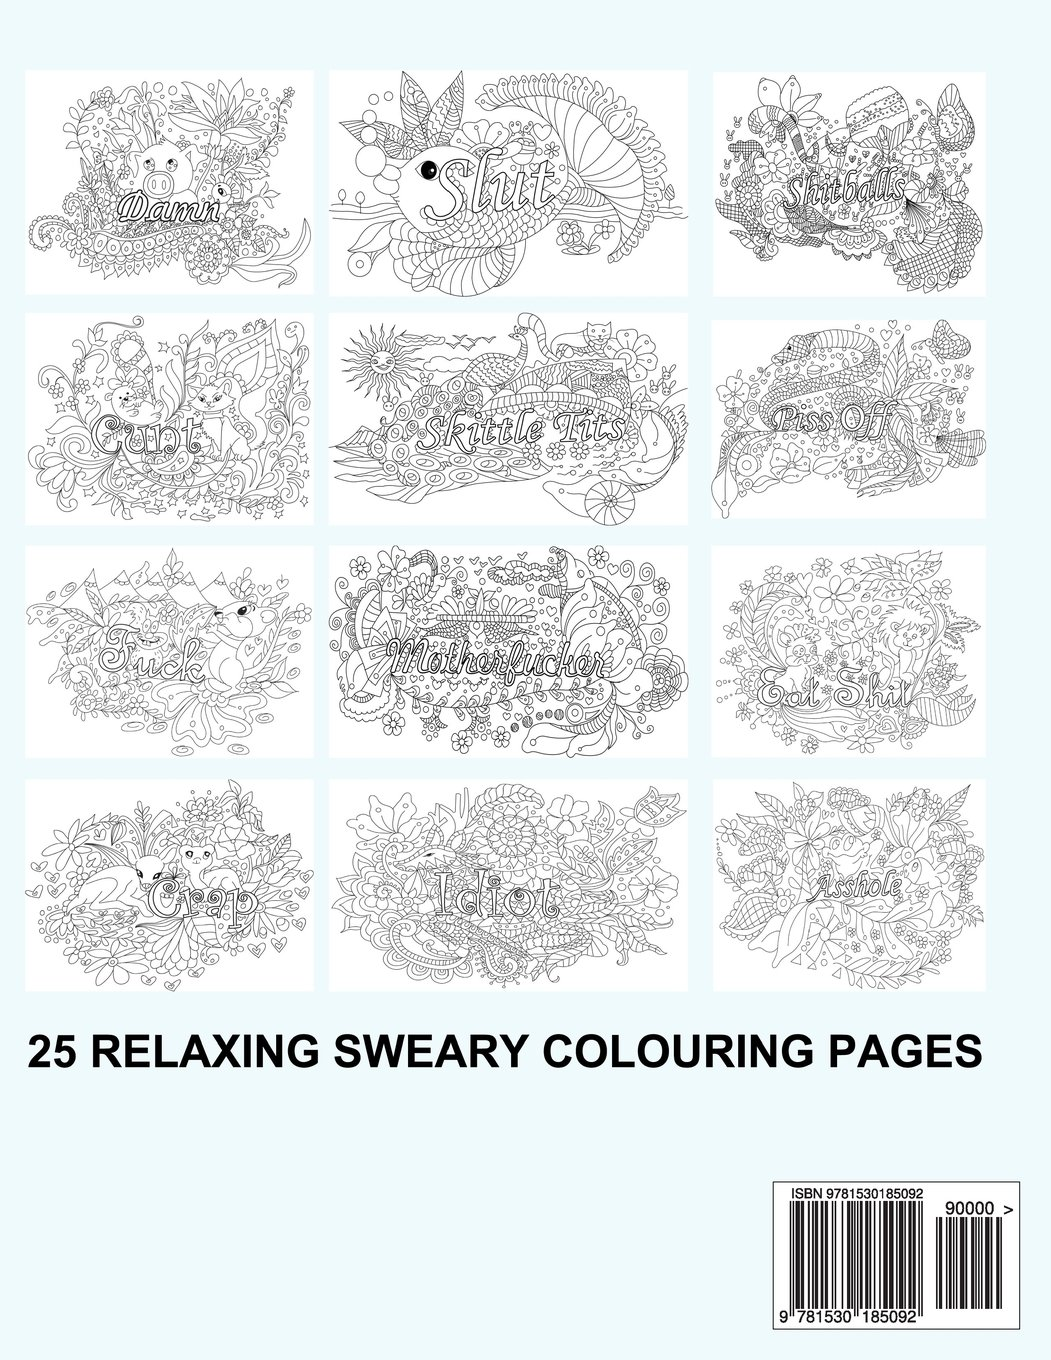 Fancy swear words coloring book - Swear Word Colouring Book Colouring Books For Adults Featuring Stress Relieving Hilarious And Fancy Sweary Words Volume 1 Stress Relief Words To Colour